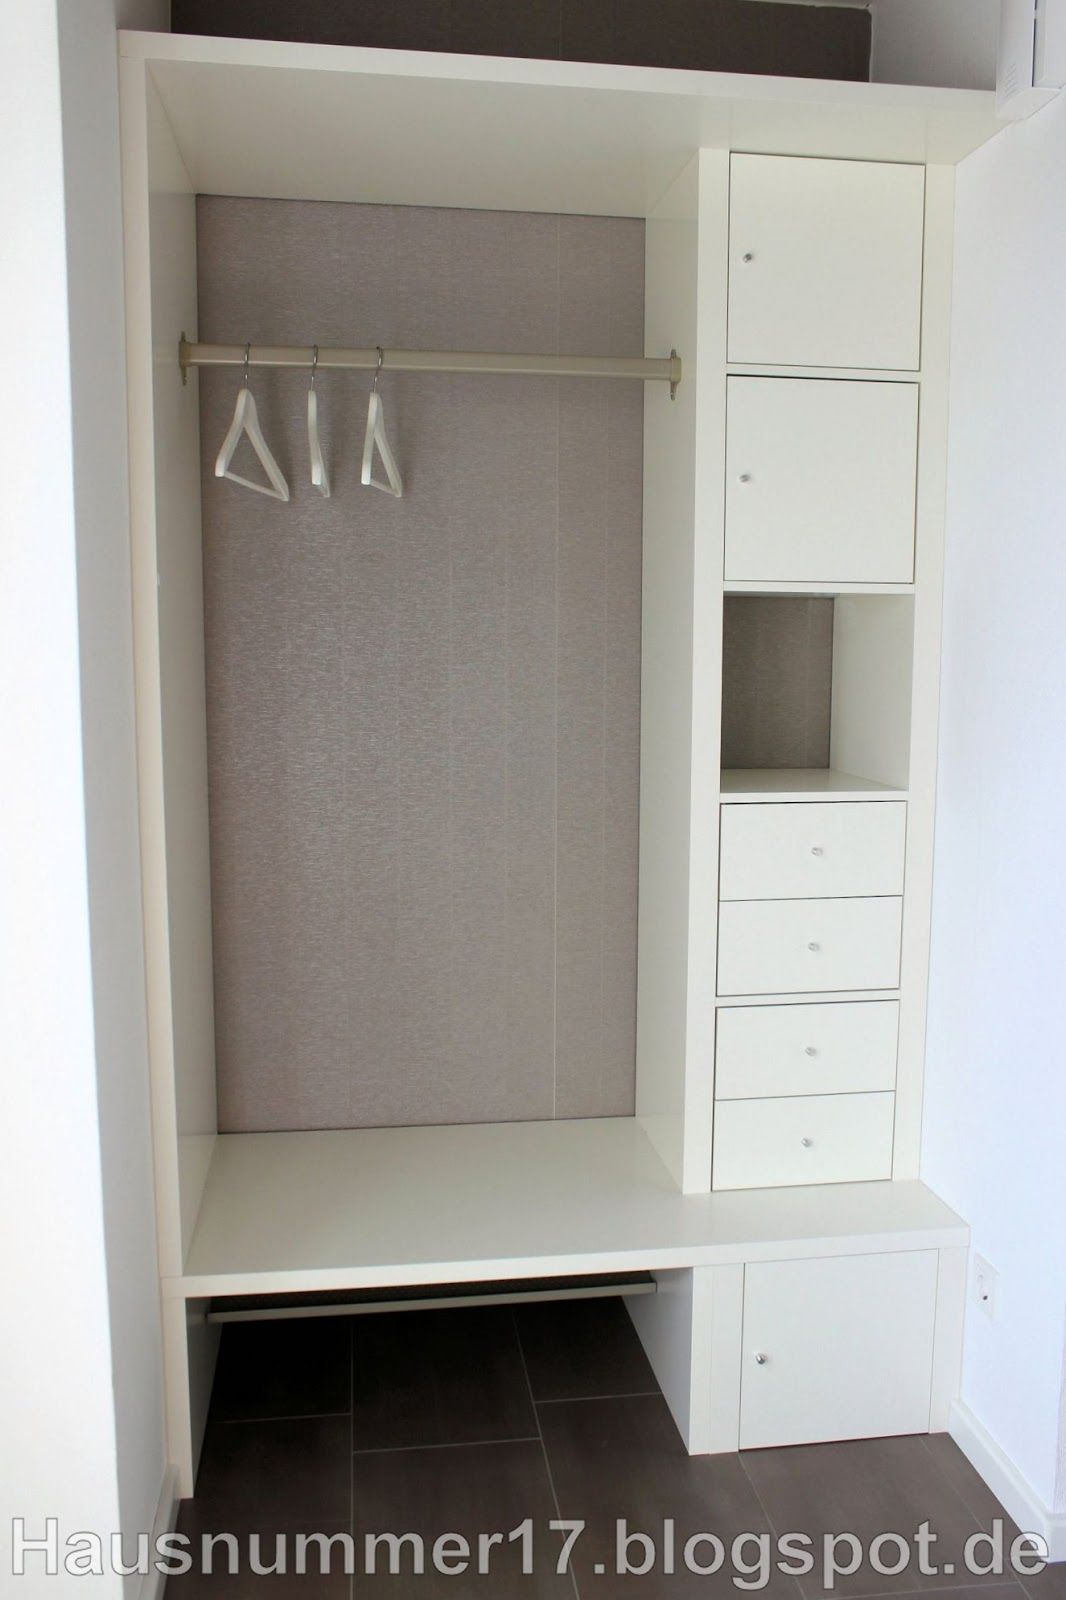 ikea hack eine flur garderobe mir schubf chern und ablagen auf grundlage eines expedit regal. Black Bedroom Furniture Sets. Home Design Ideas